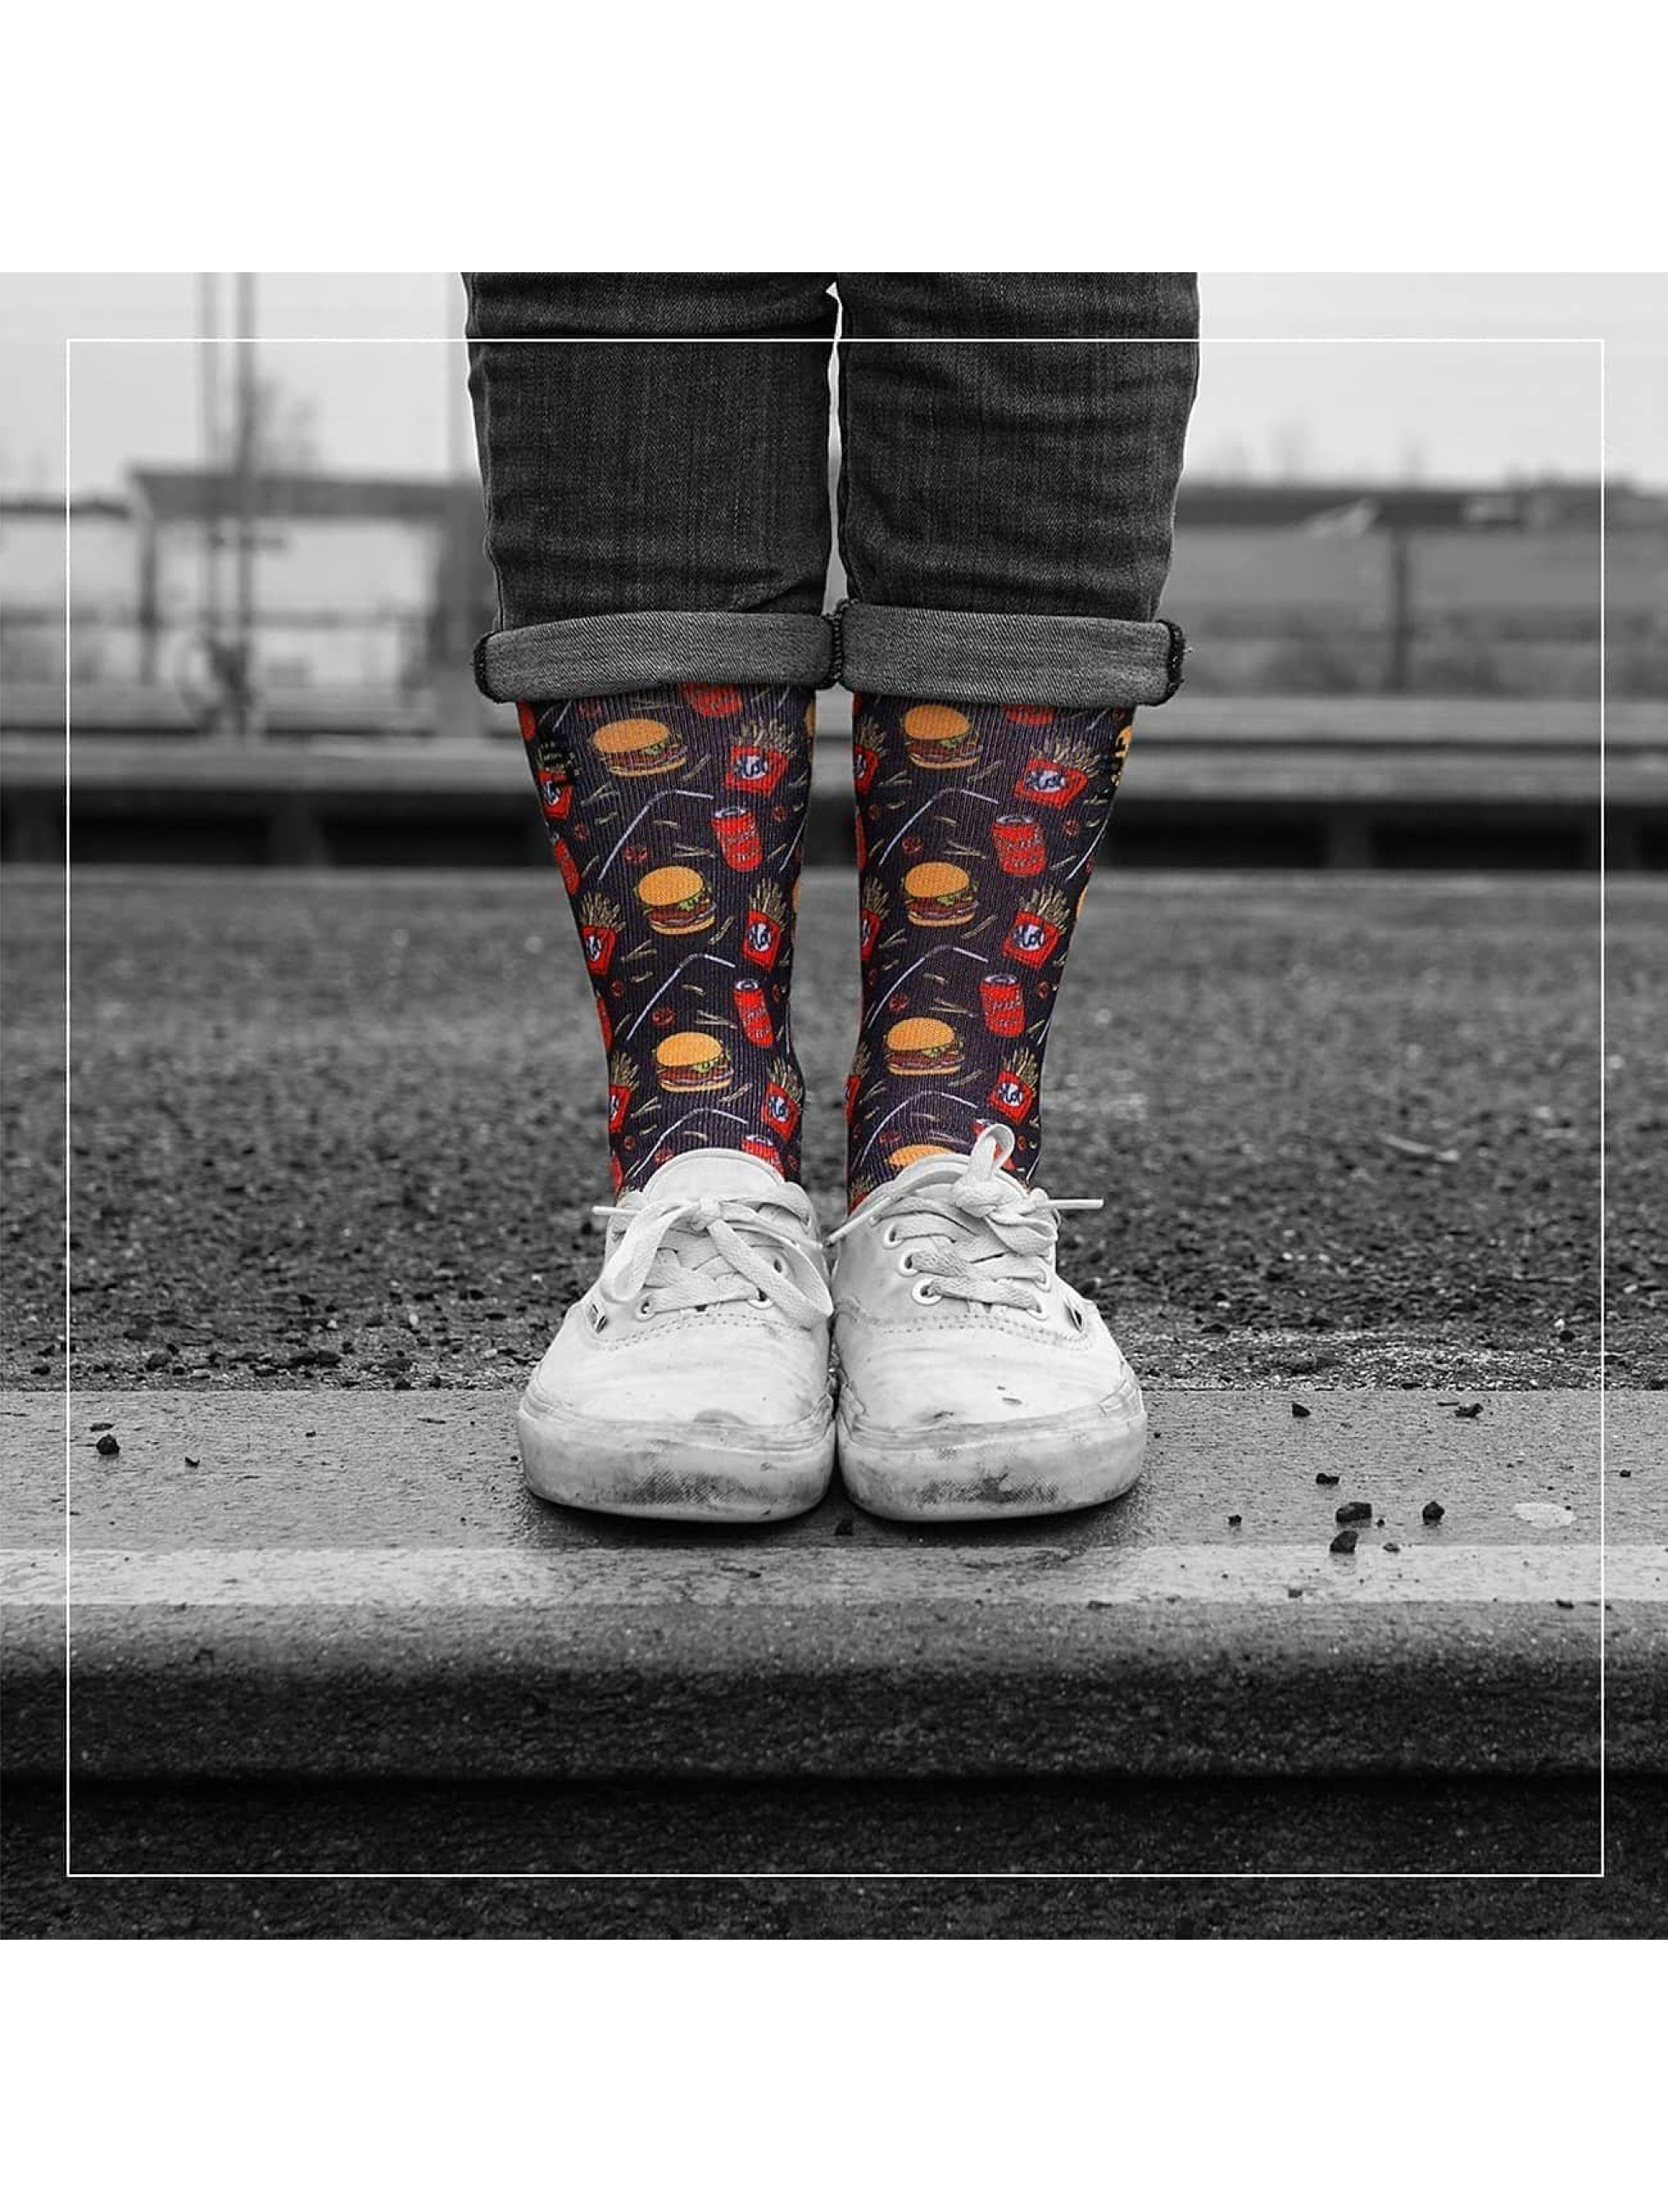 LUF SOX Socken King Menu bunt